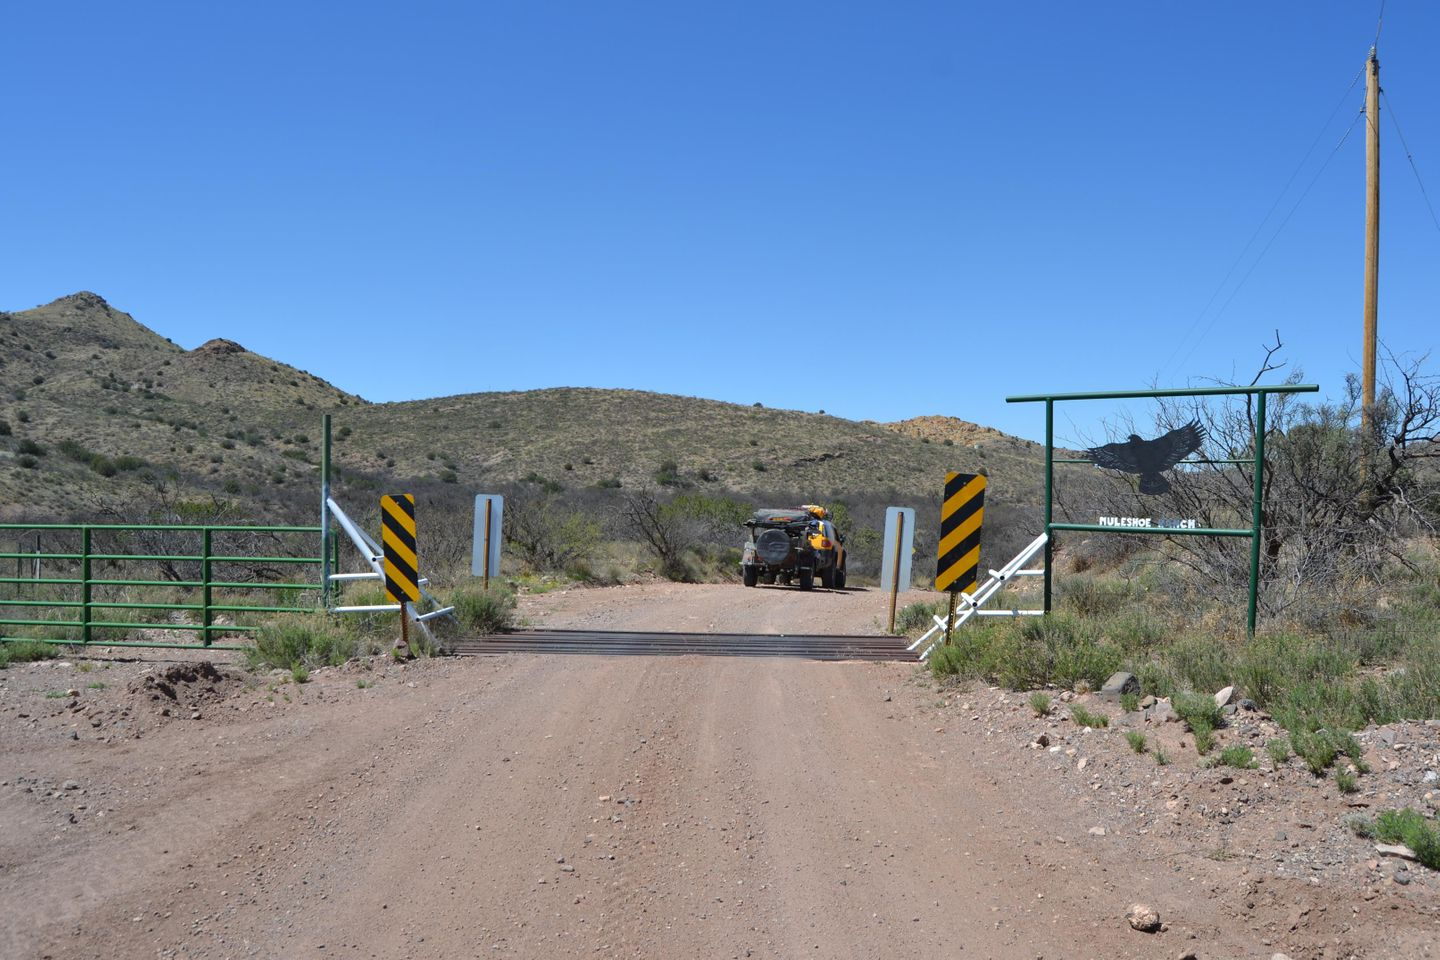 Jackson Cabin/Muleshoe Ranch Road - Waypoint 2: Muleshoe Ranch Boundary - Cattle Guard